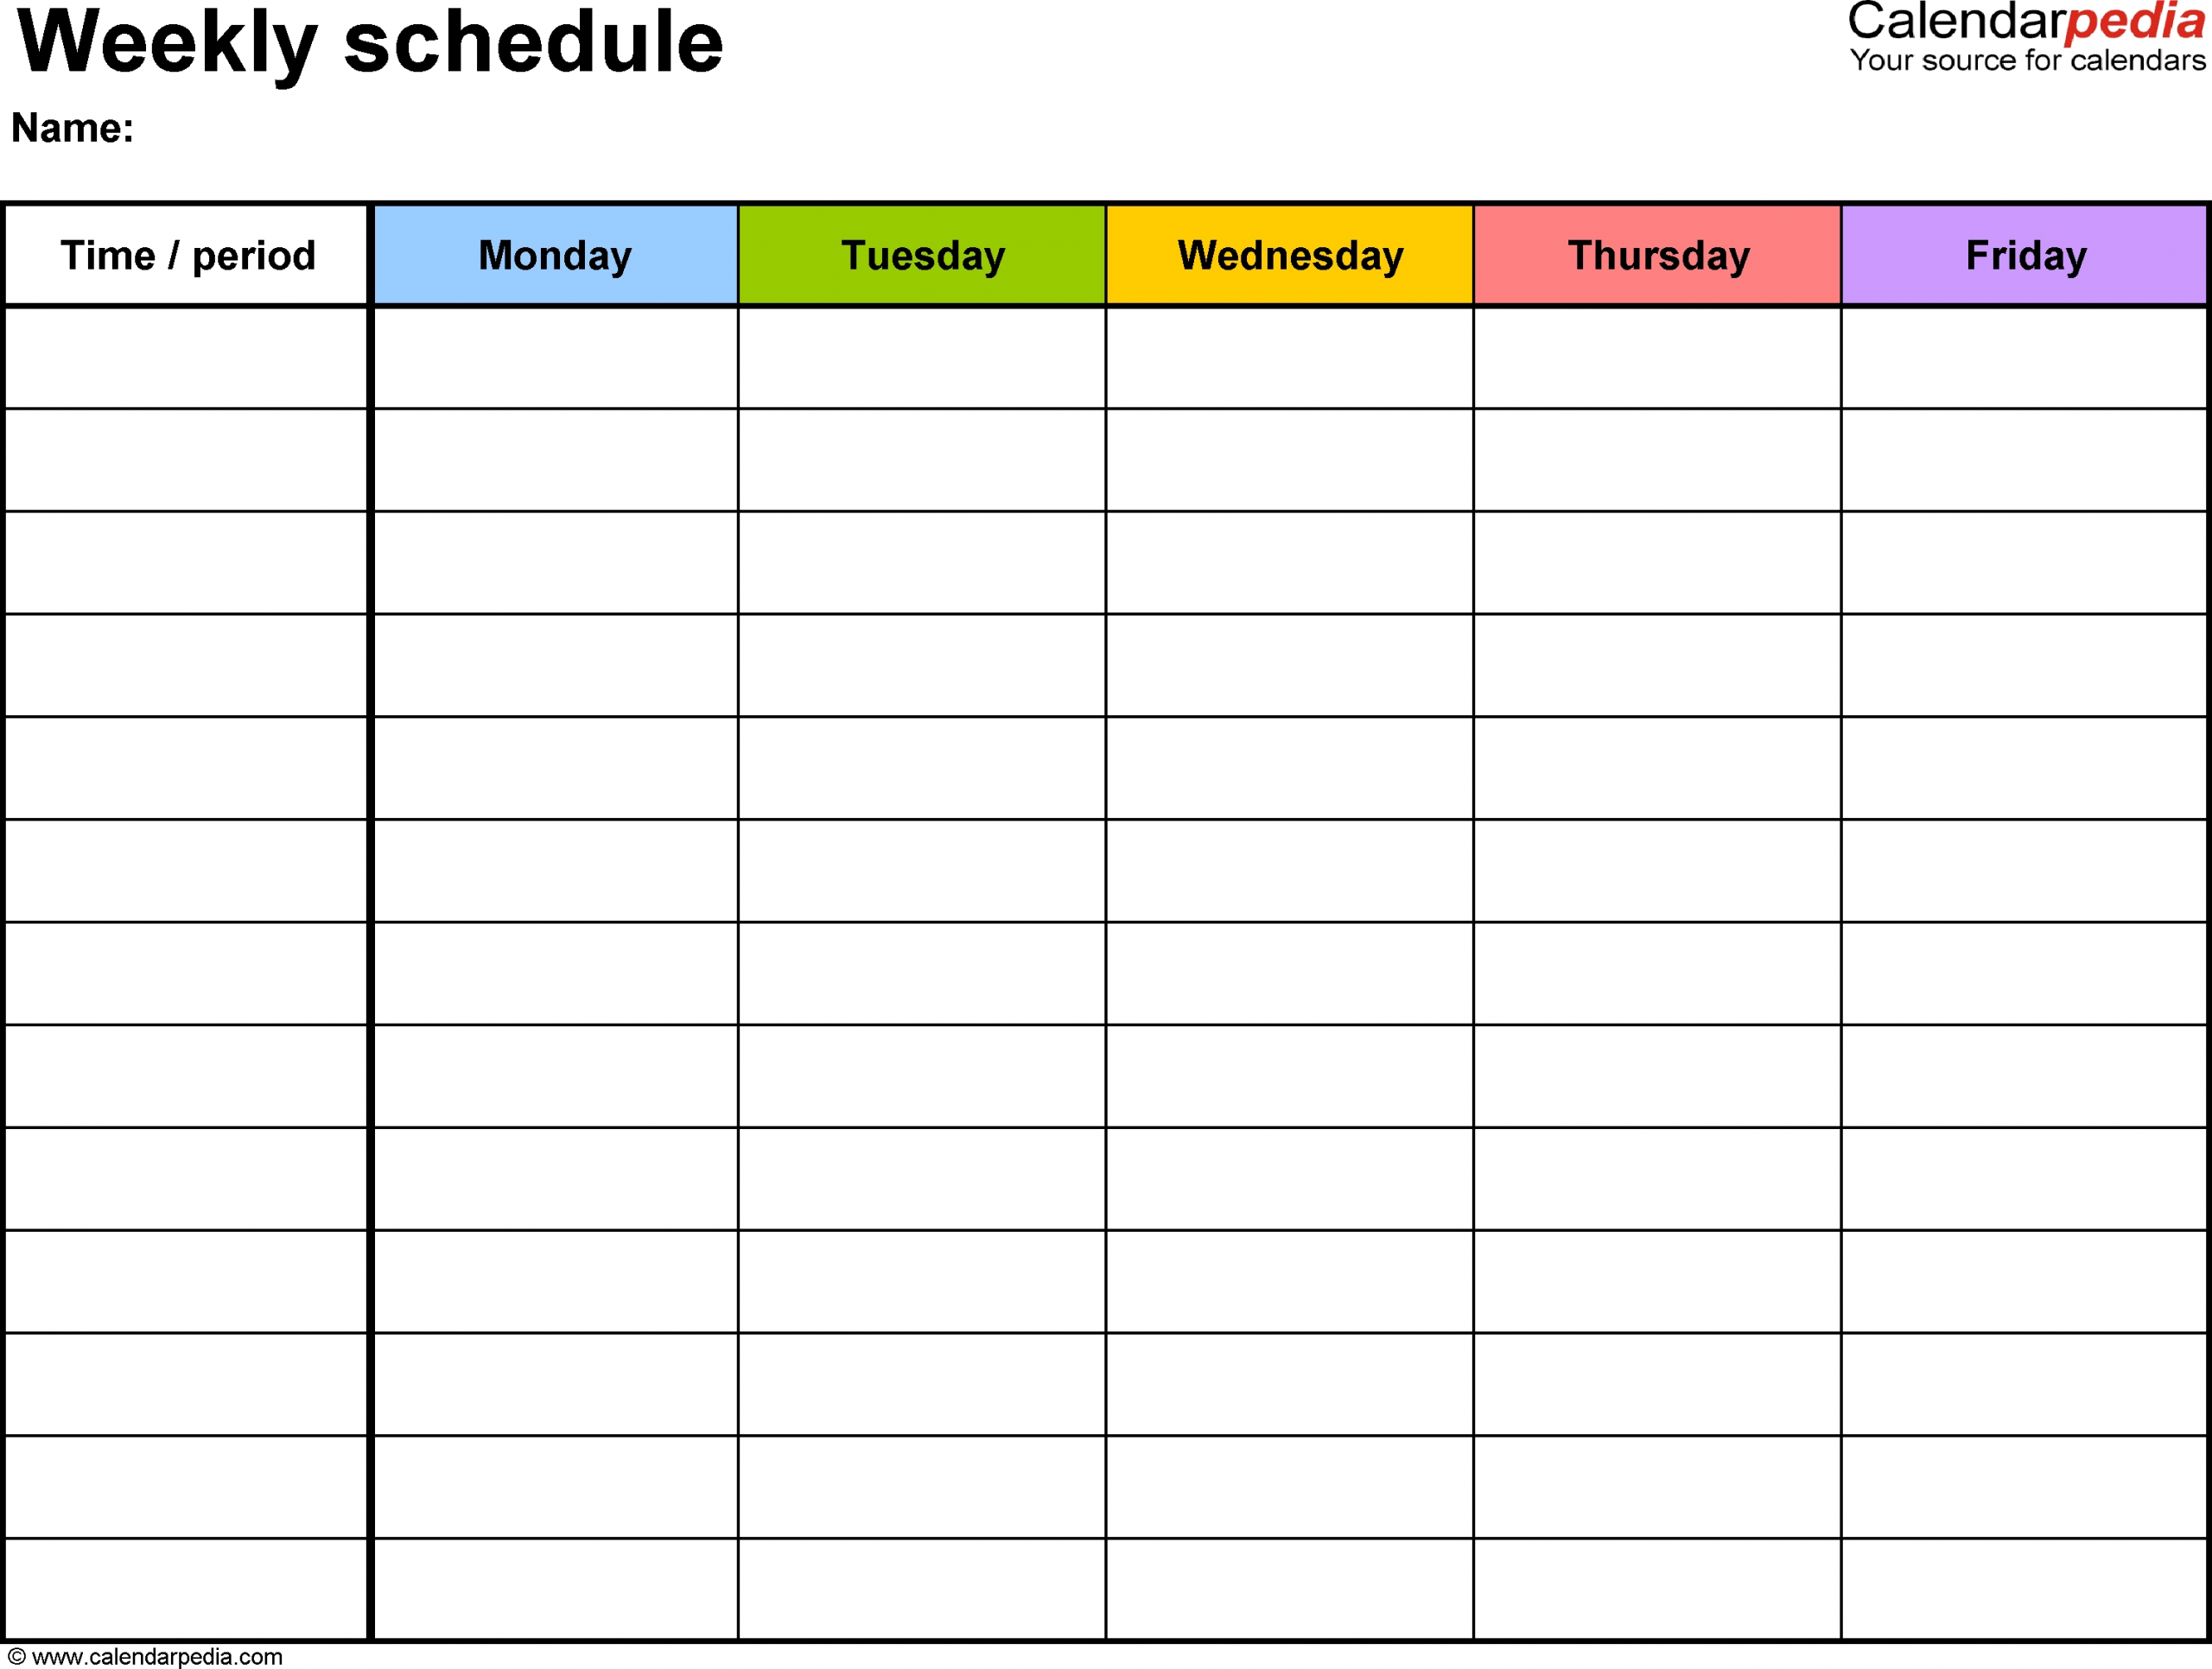 Free Weekly Schedule Templates For Word - 18 Templates with 7 Day Week Blank Calendar